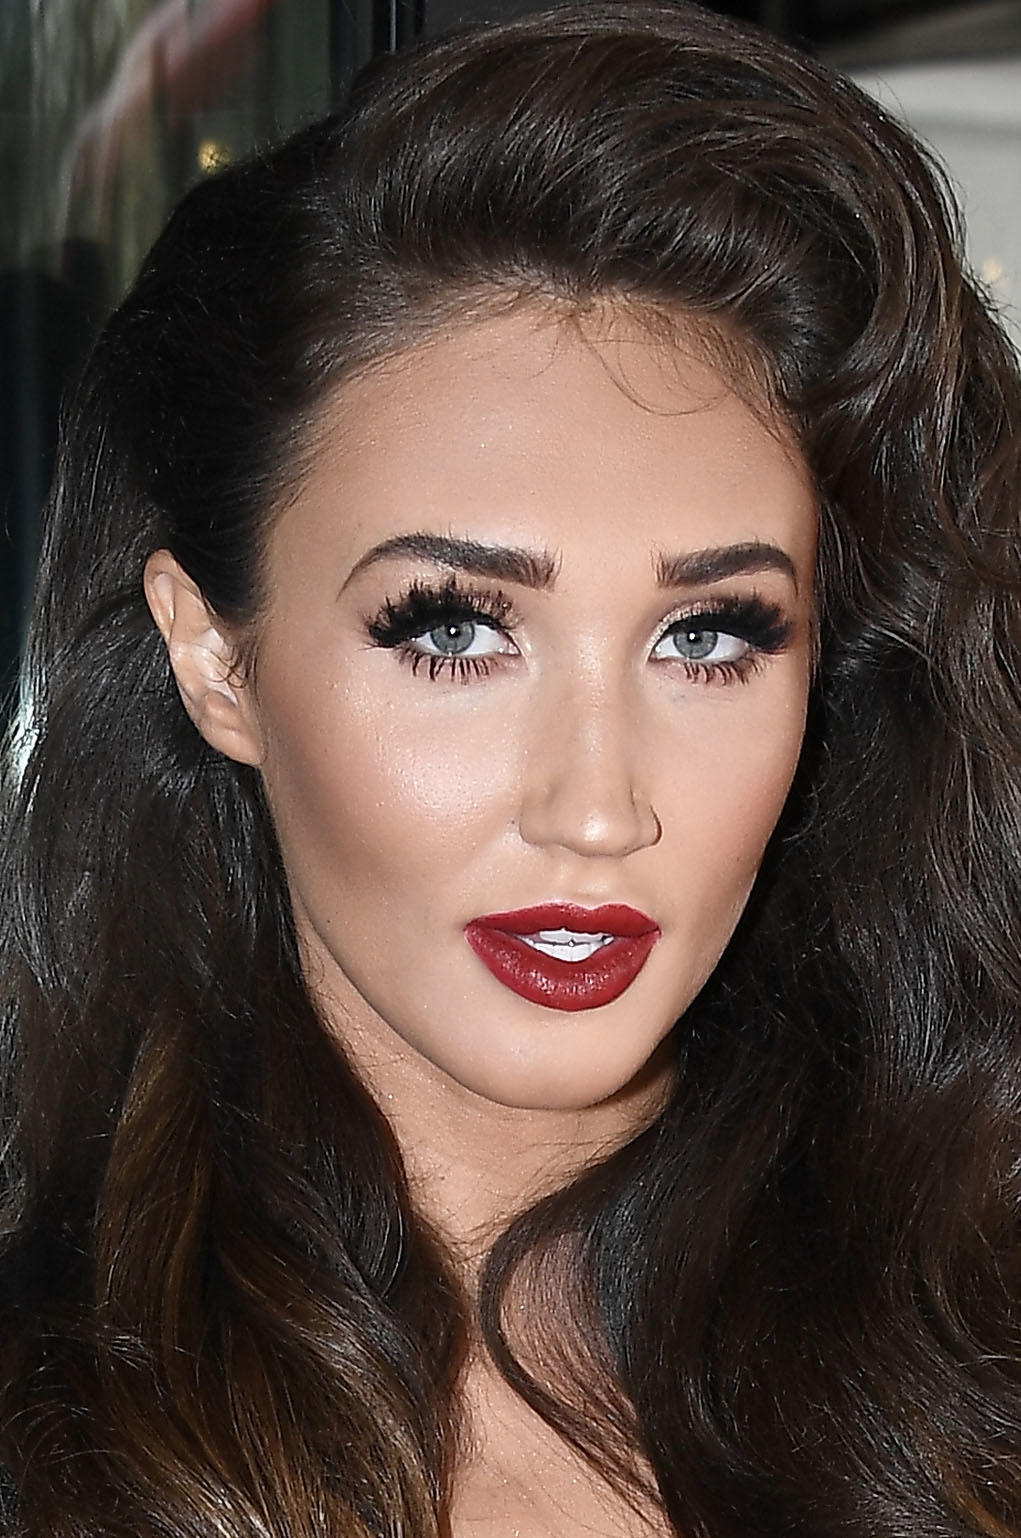 Megan McKenna at the TRIC Awards 2017 in London.